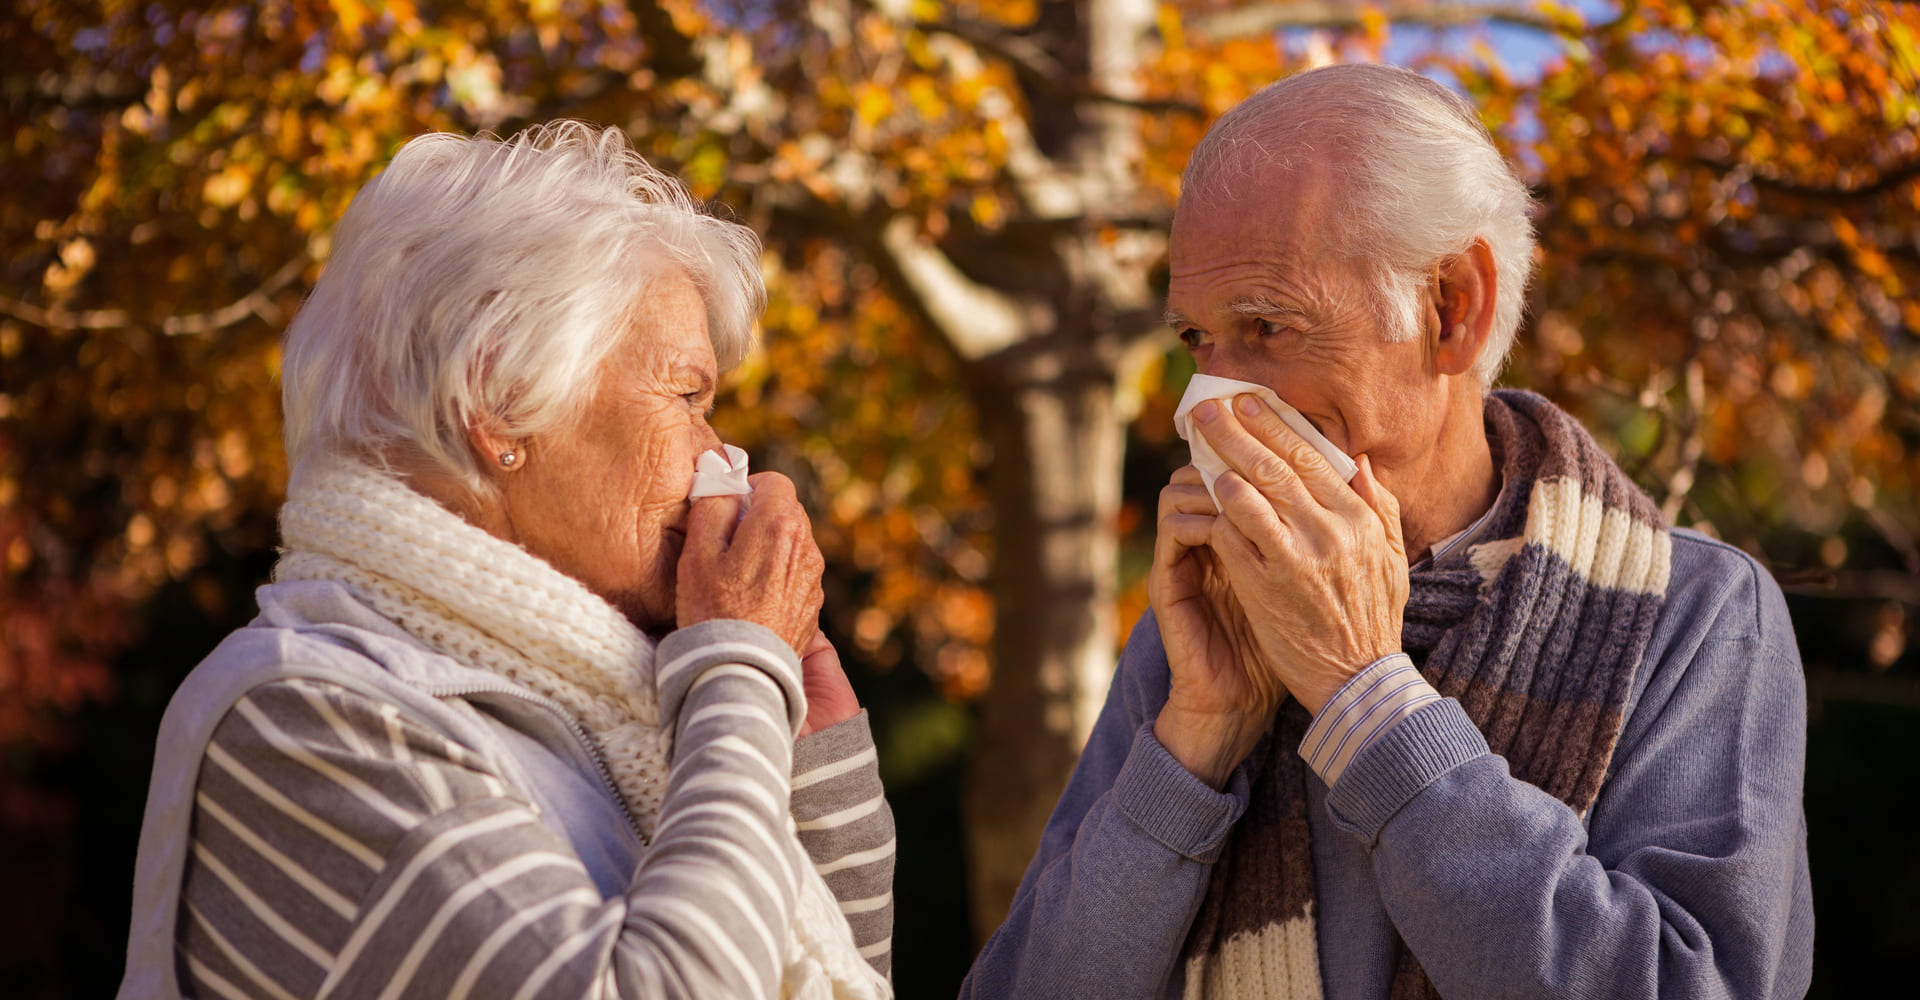 Eldery couple sneezing